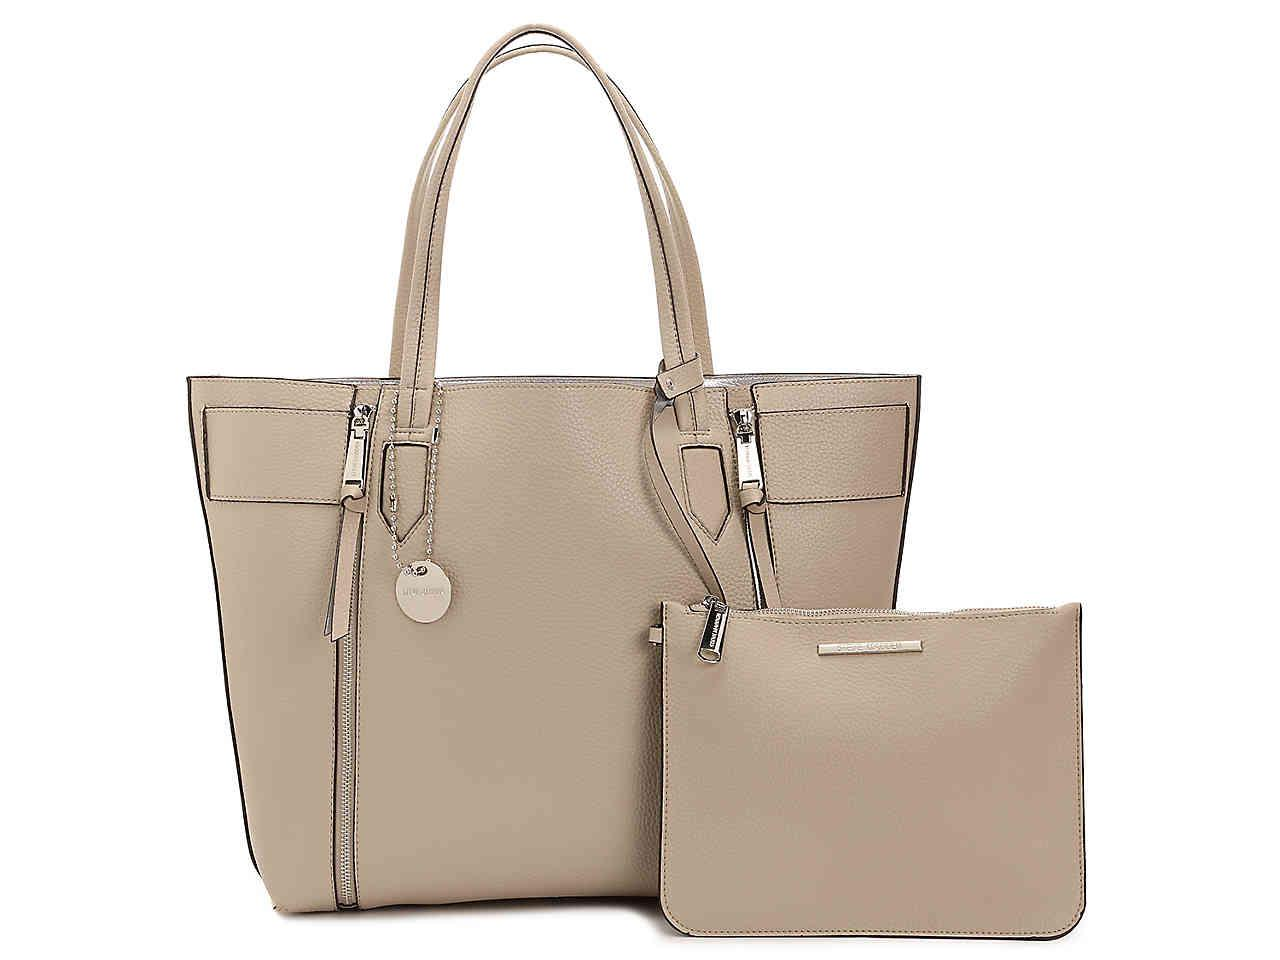 Lyst - Steve Madden Darby Tote in Natural 36ed57cd37bcd